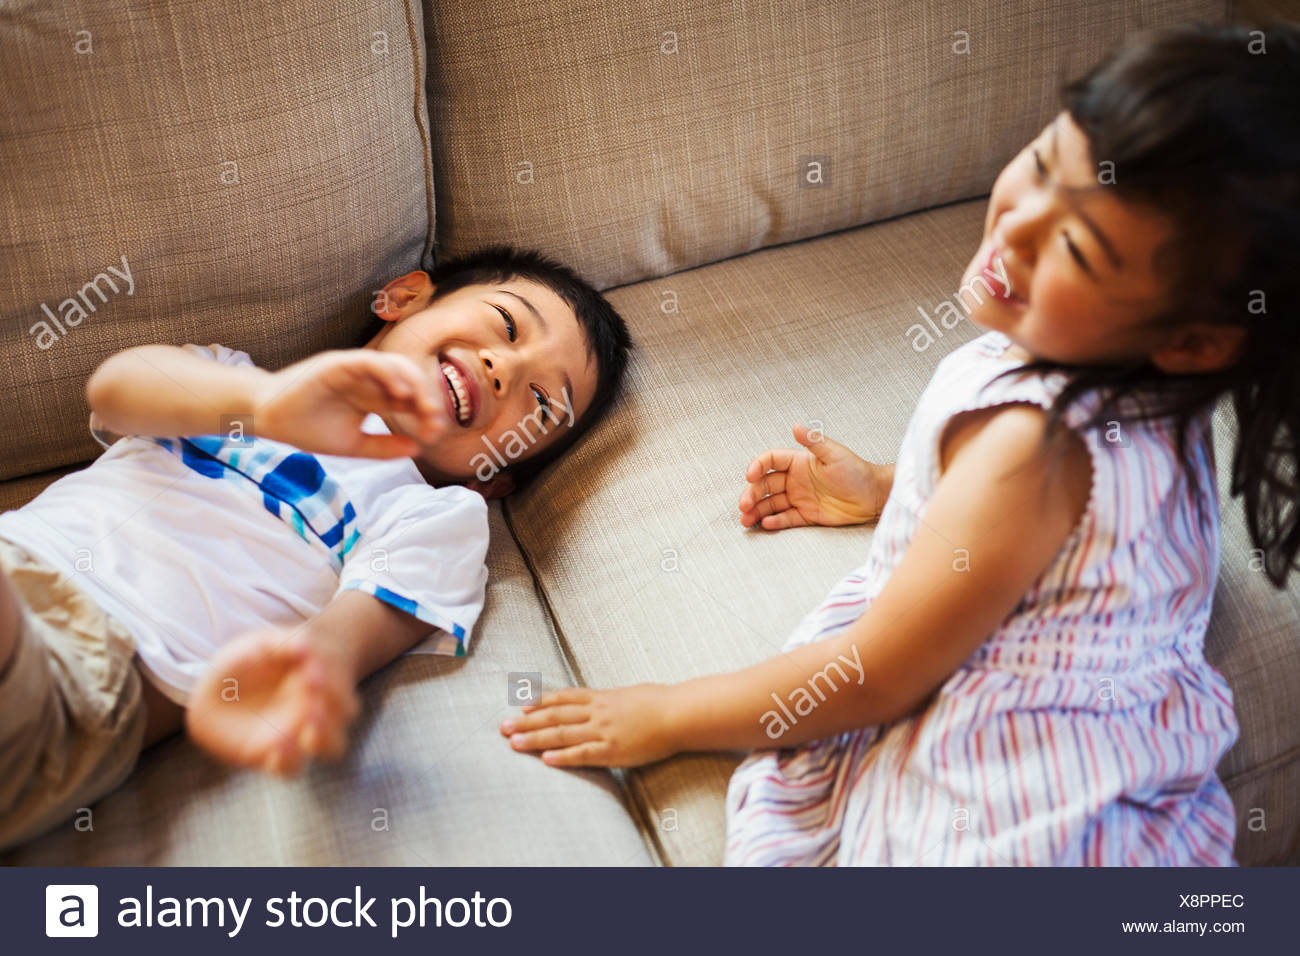 Family home. Two children playing on the floor, giggling. - Stock Image